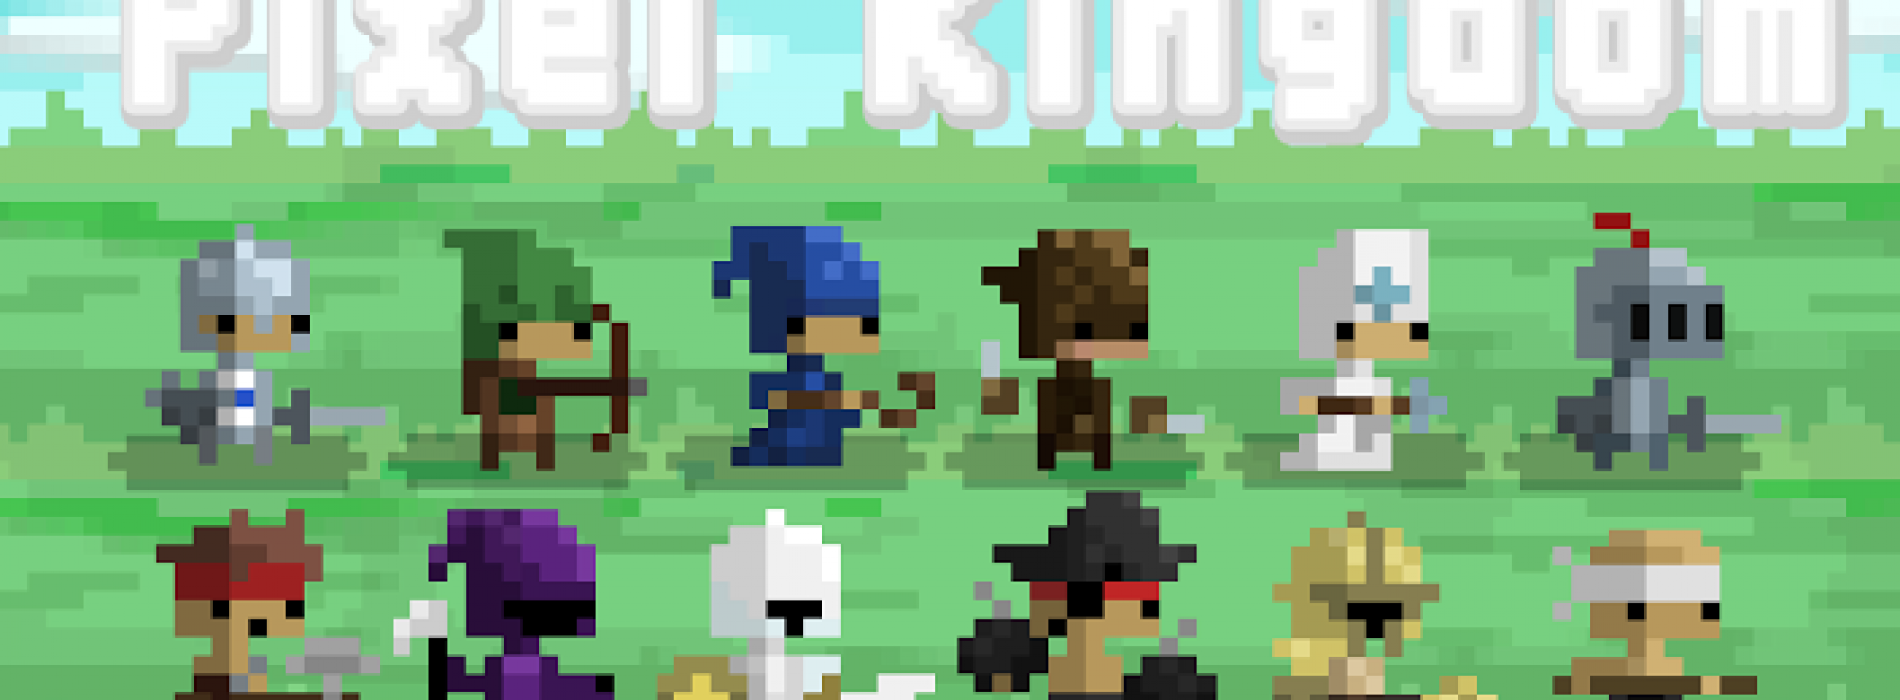 Pixel Kingdom – 8 bits of tower defense/RTS fun